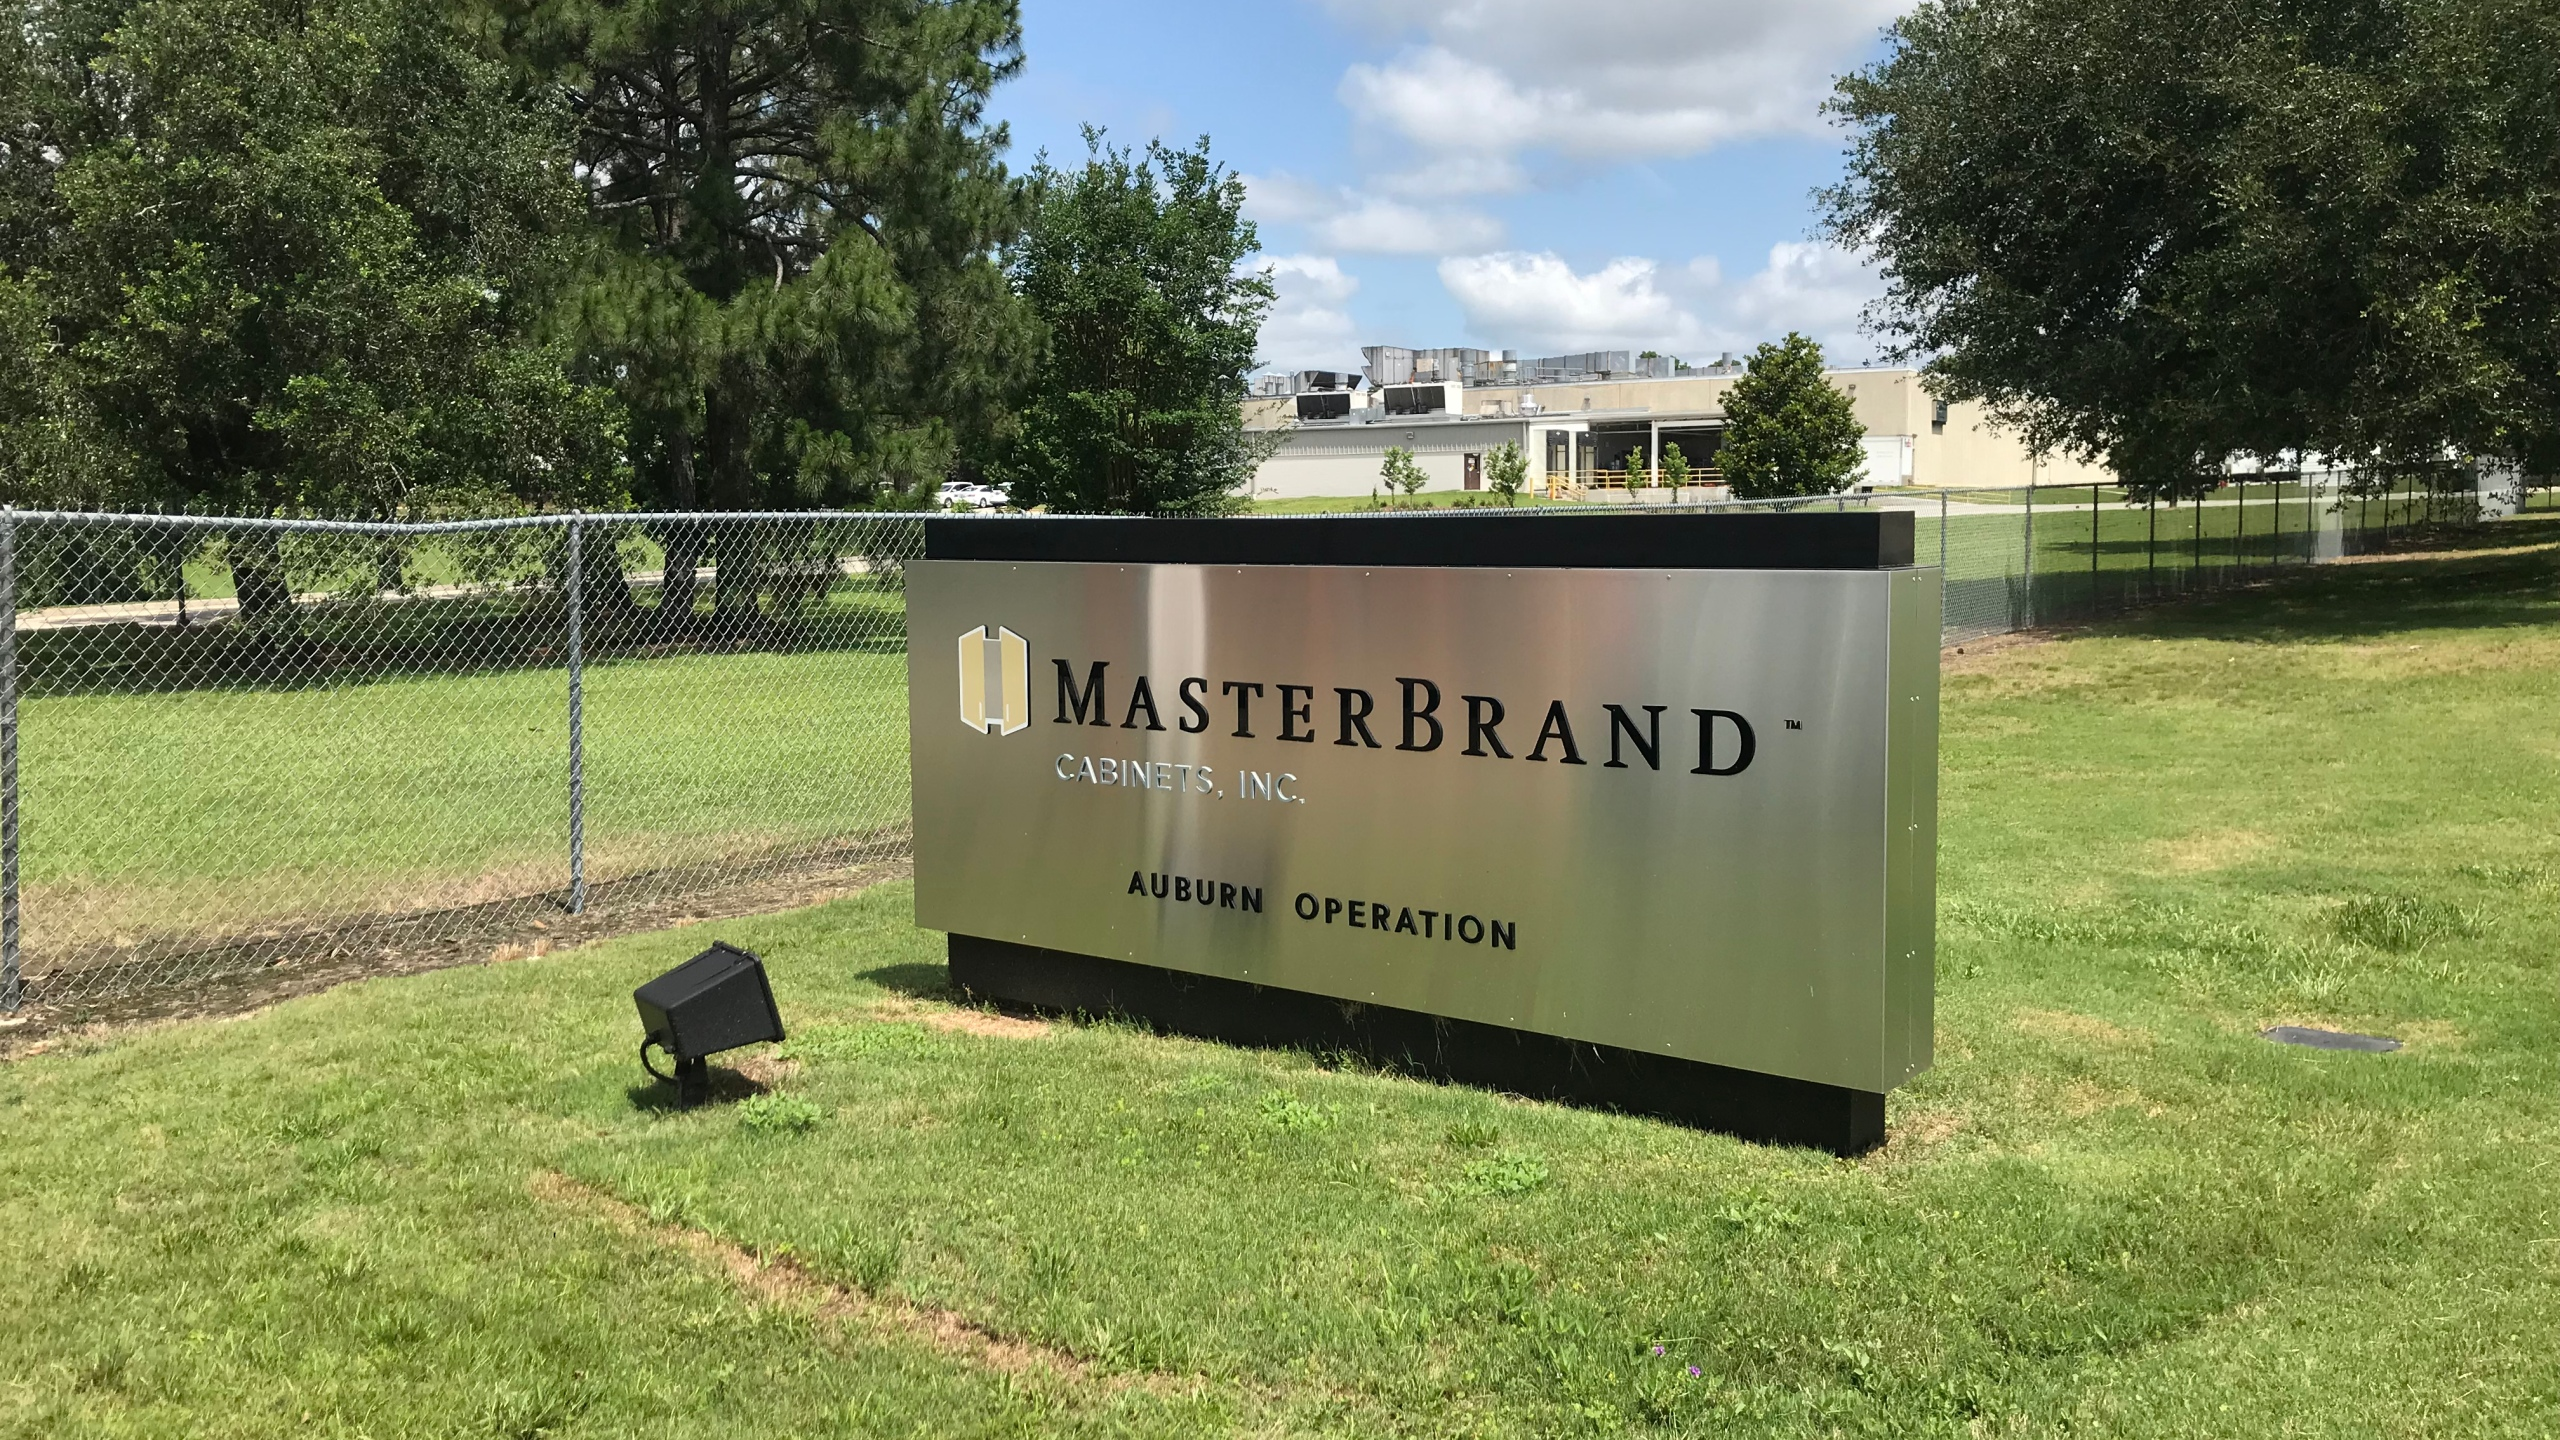 Auburn Hundreds Of Workers Have Been Laid Off As Masterbrand